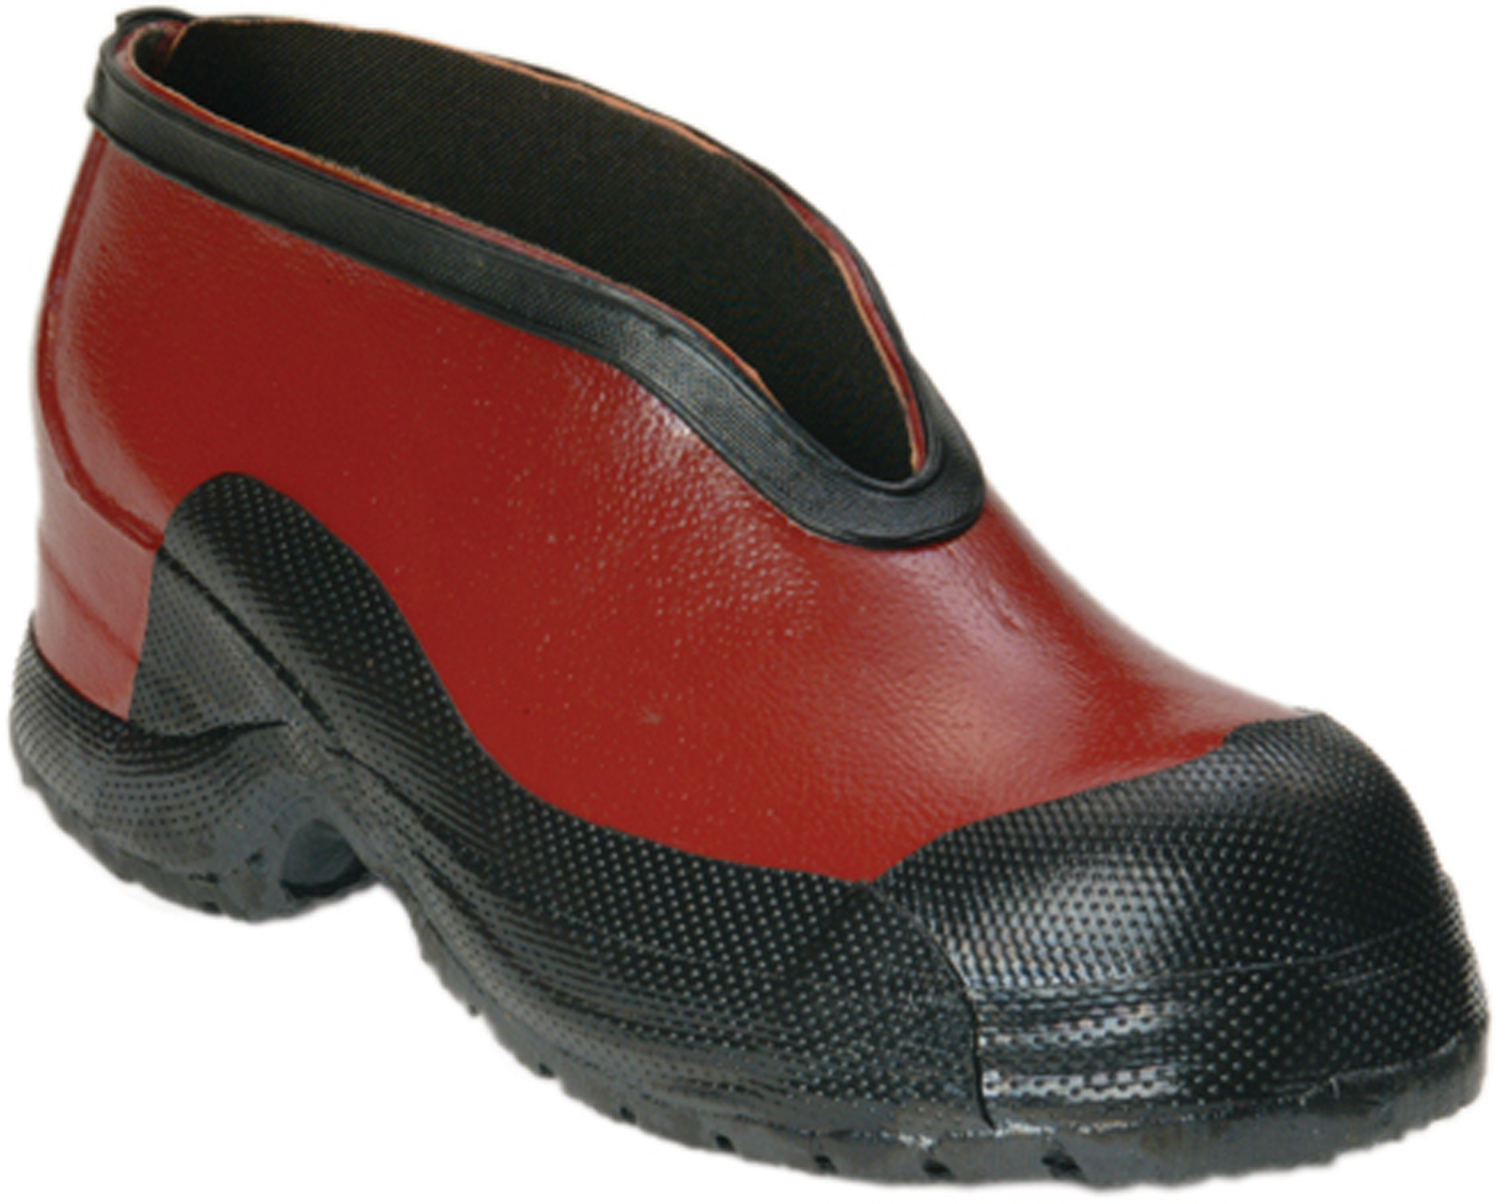 Salisbury ASTM Dielectric Overshoes - Non-Buckle, 10